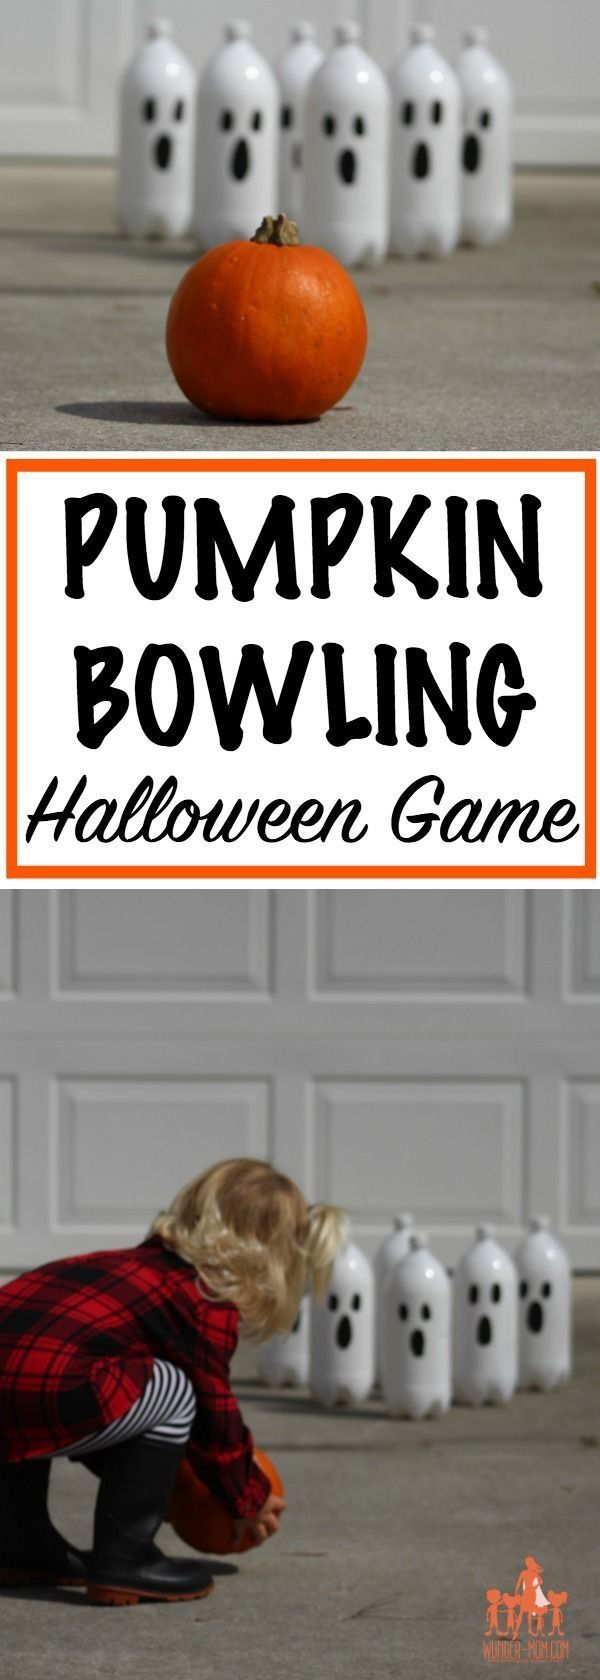 15 Halloween Party Games